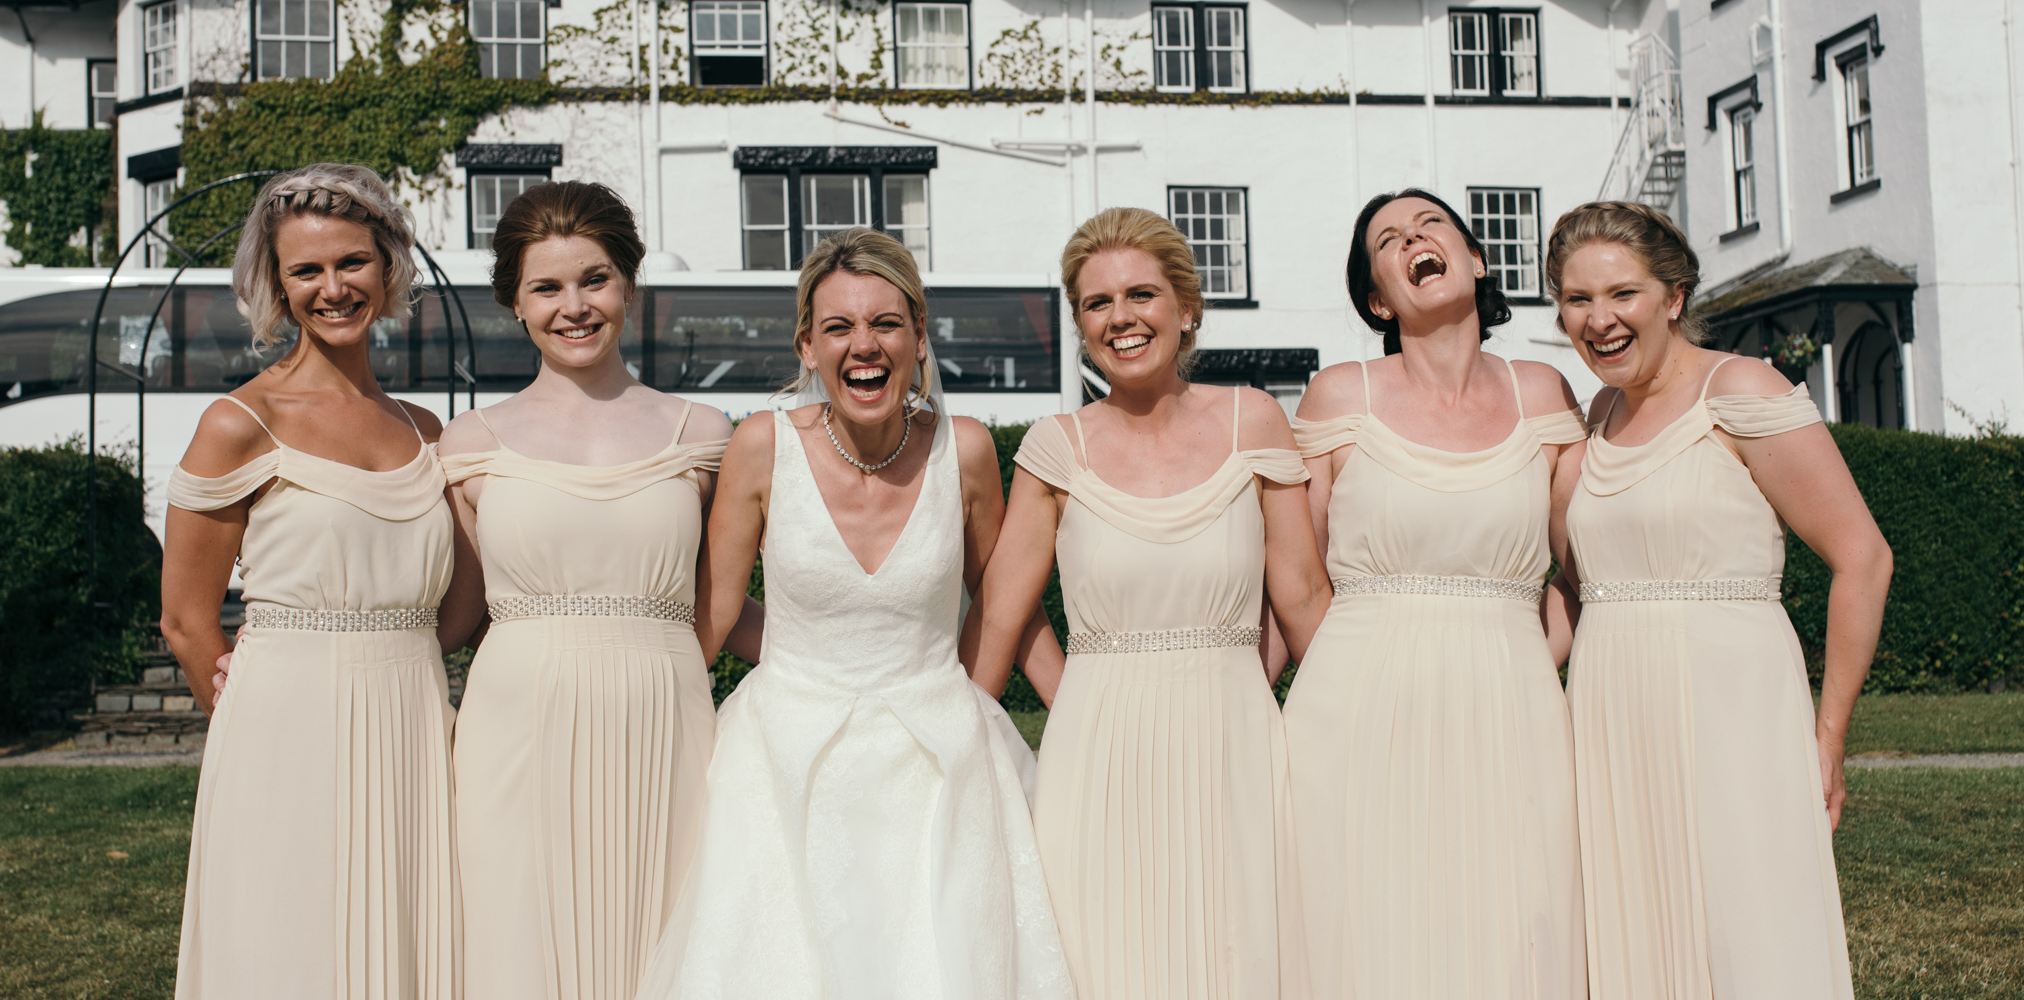 The bride and bridesmaids goofing around during the family group shots